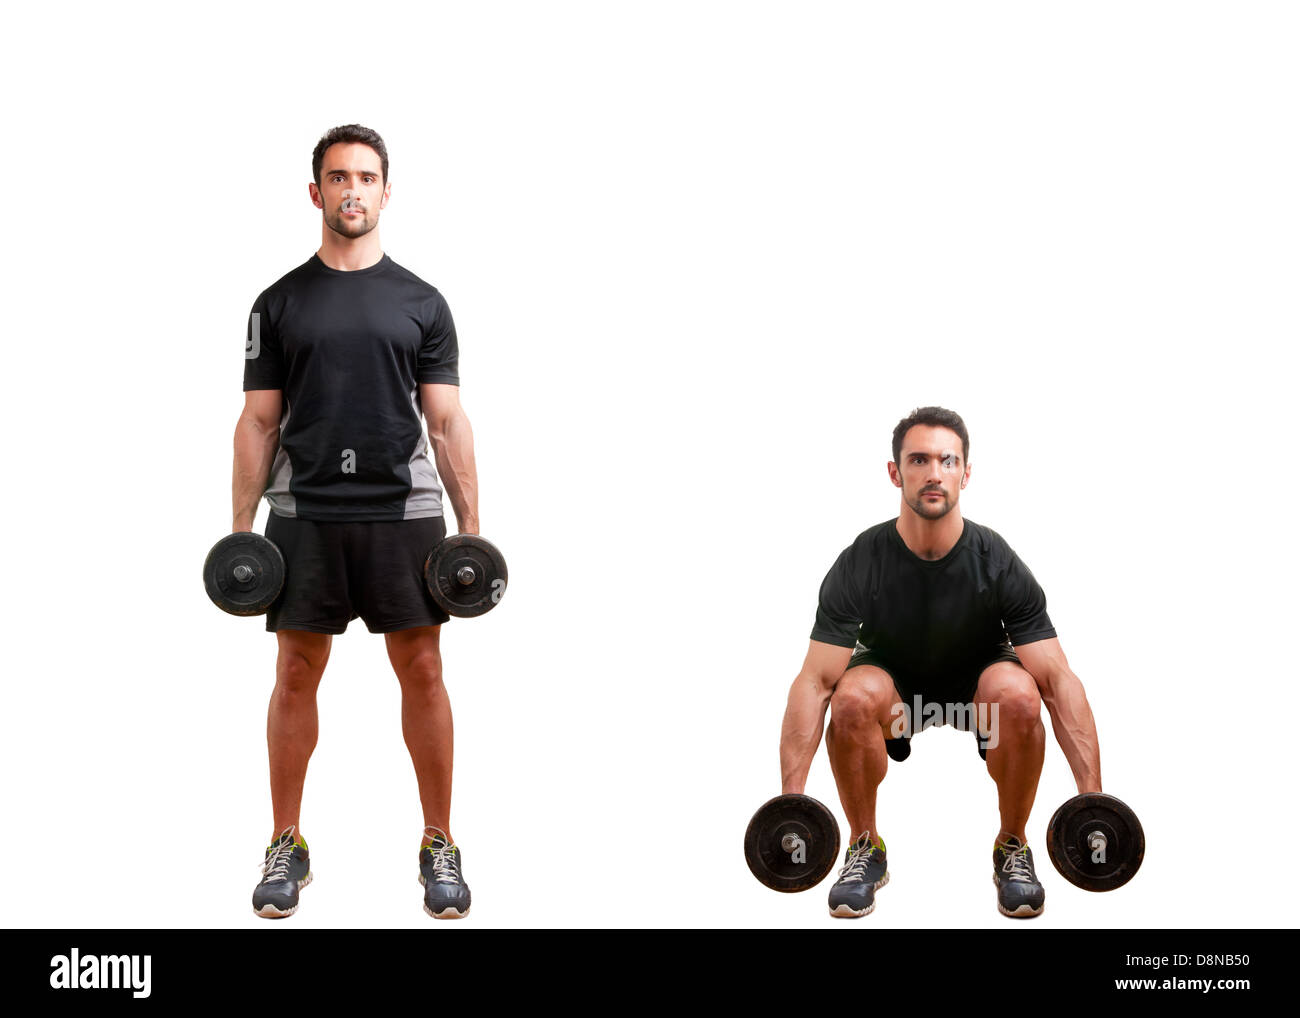 Personal Trainer doing dumbbell squat for training his legs, isolated in white - Stock Image